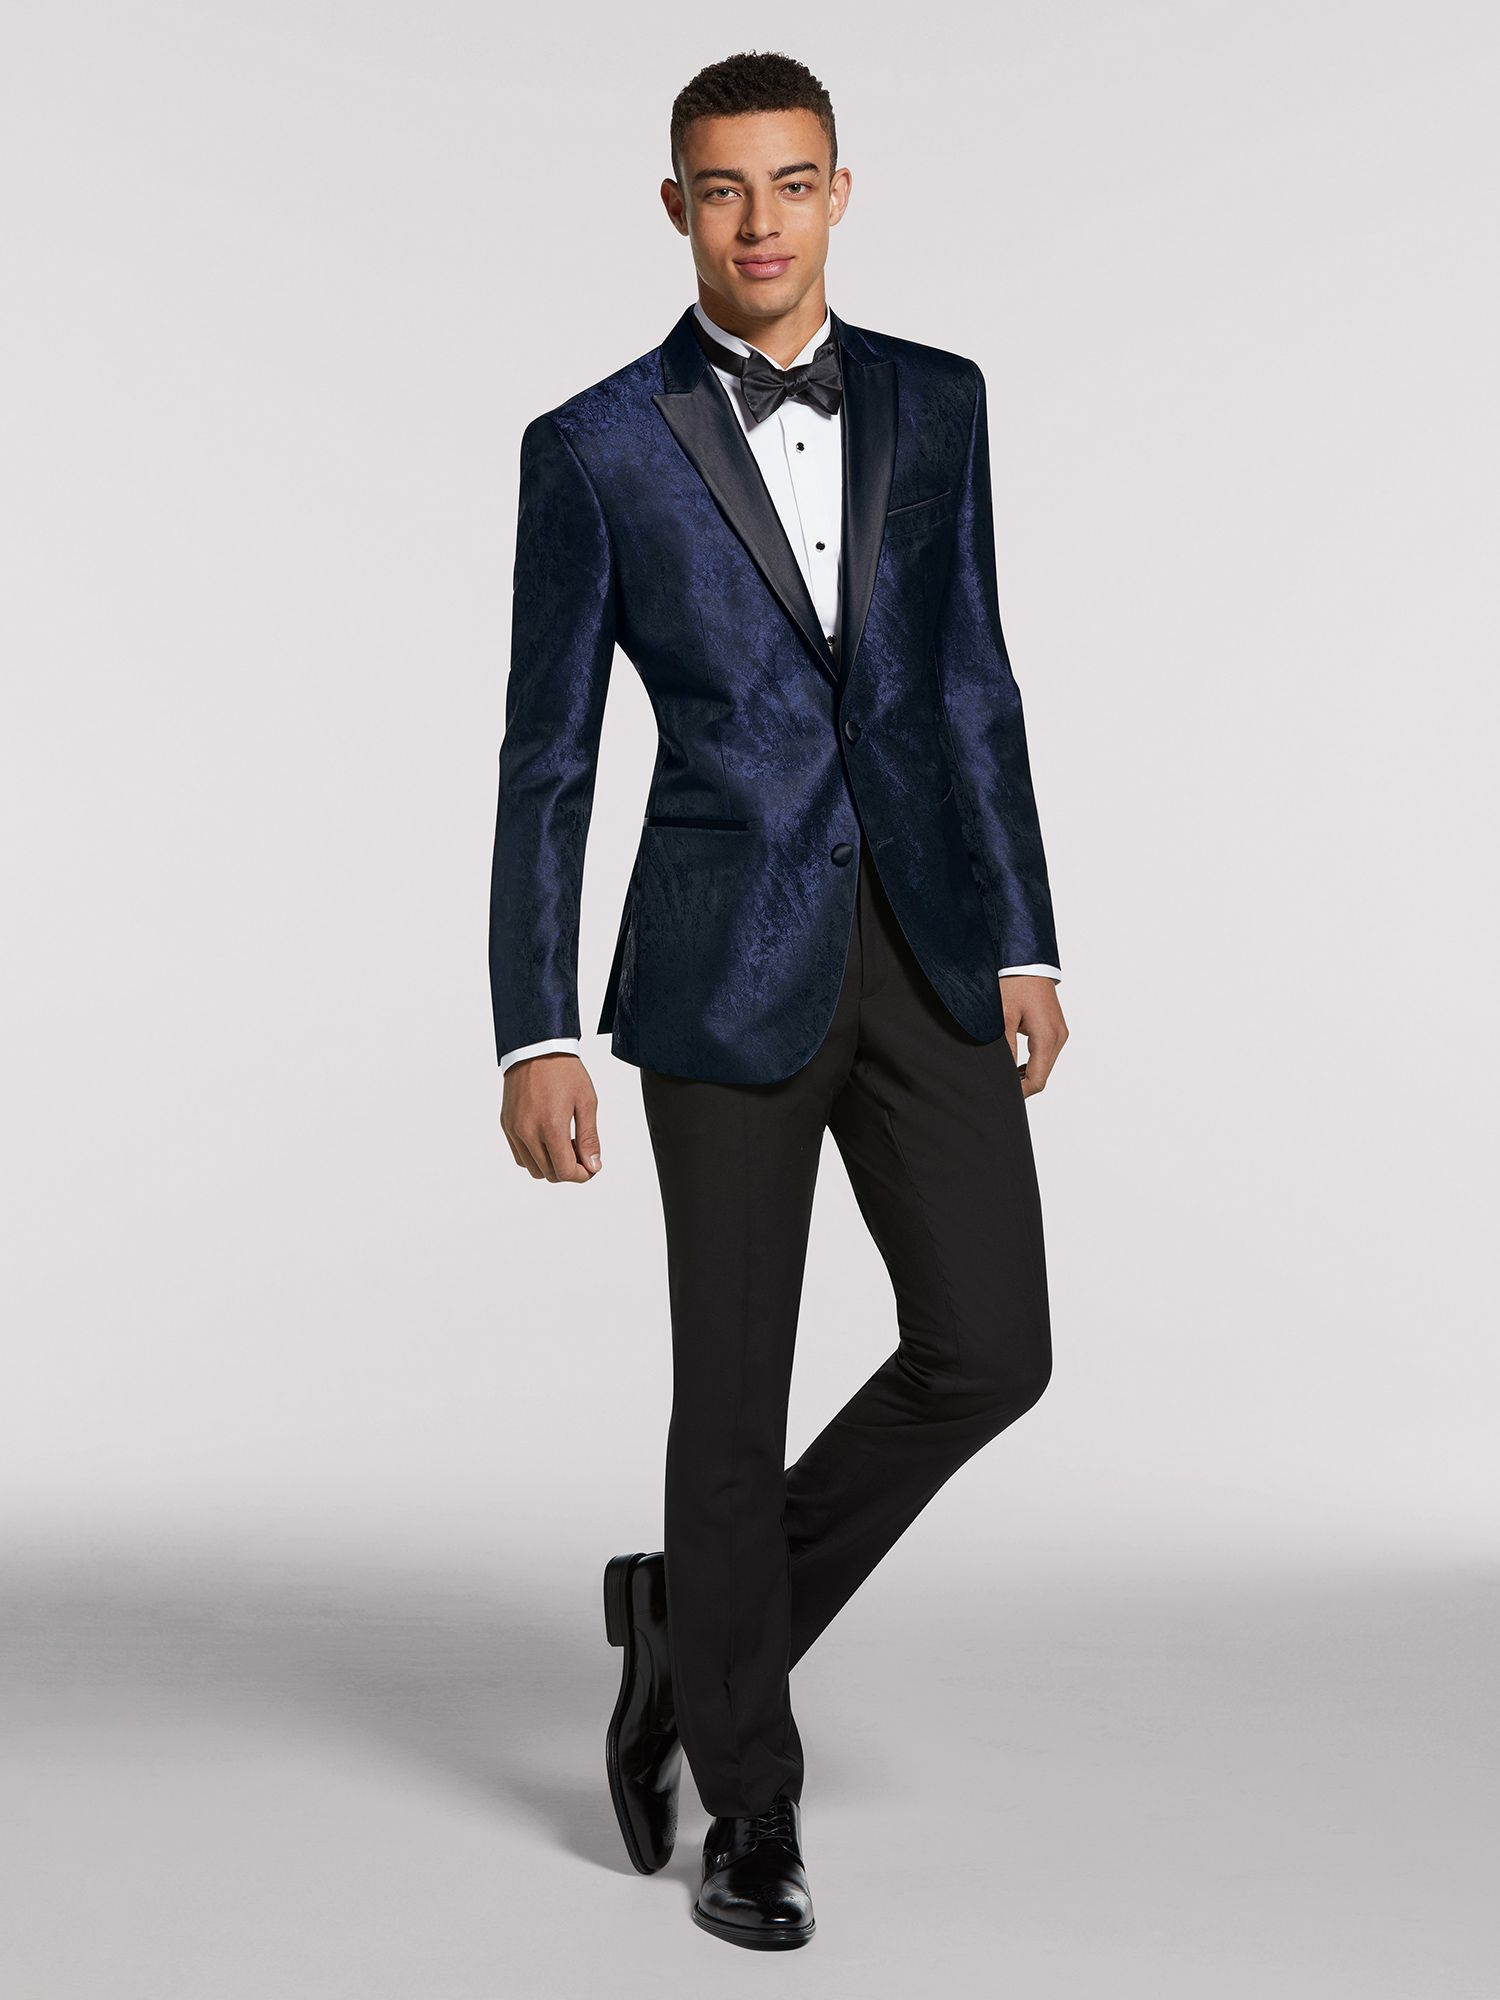 Mens Pre-Styled Looks, Suits - Deep End - Men's Wearhouse